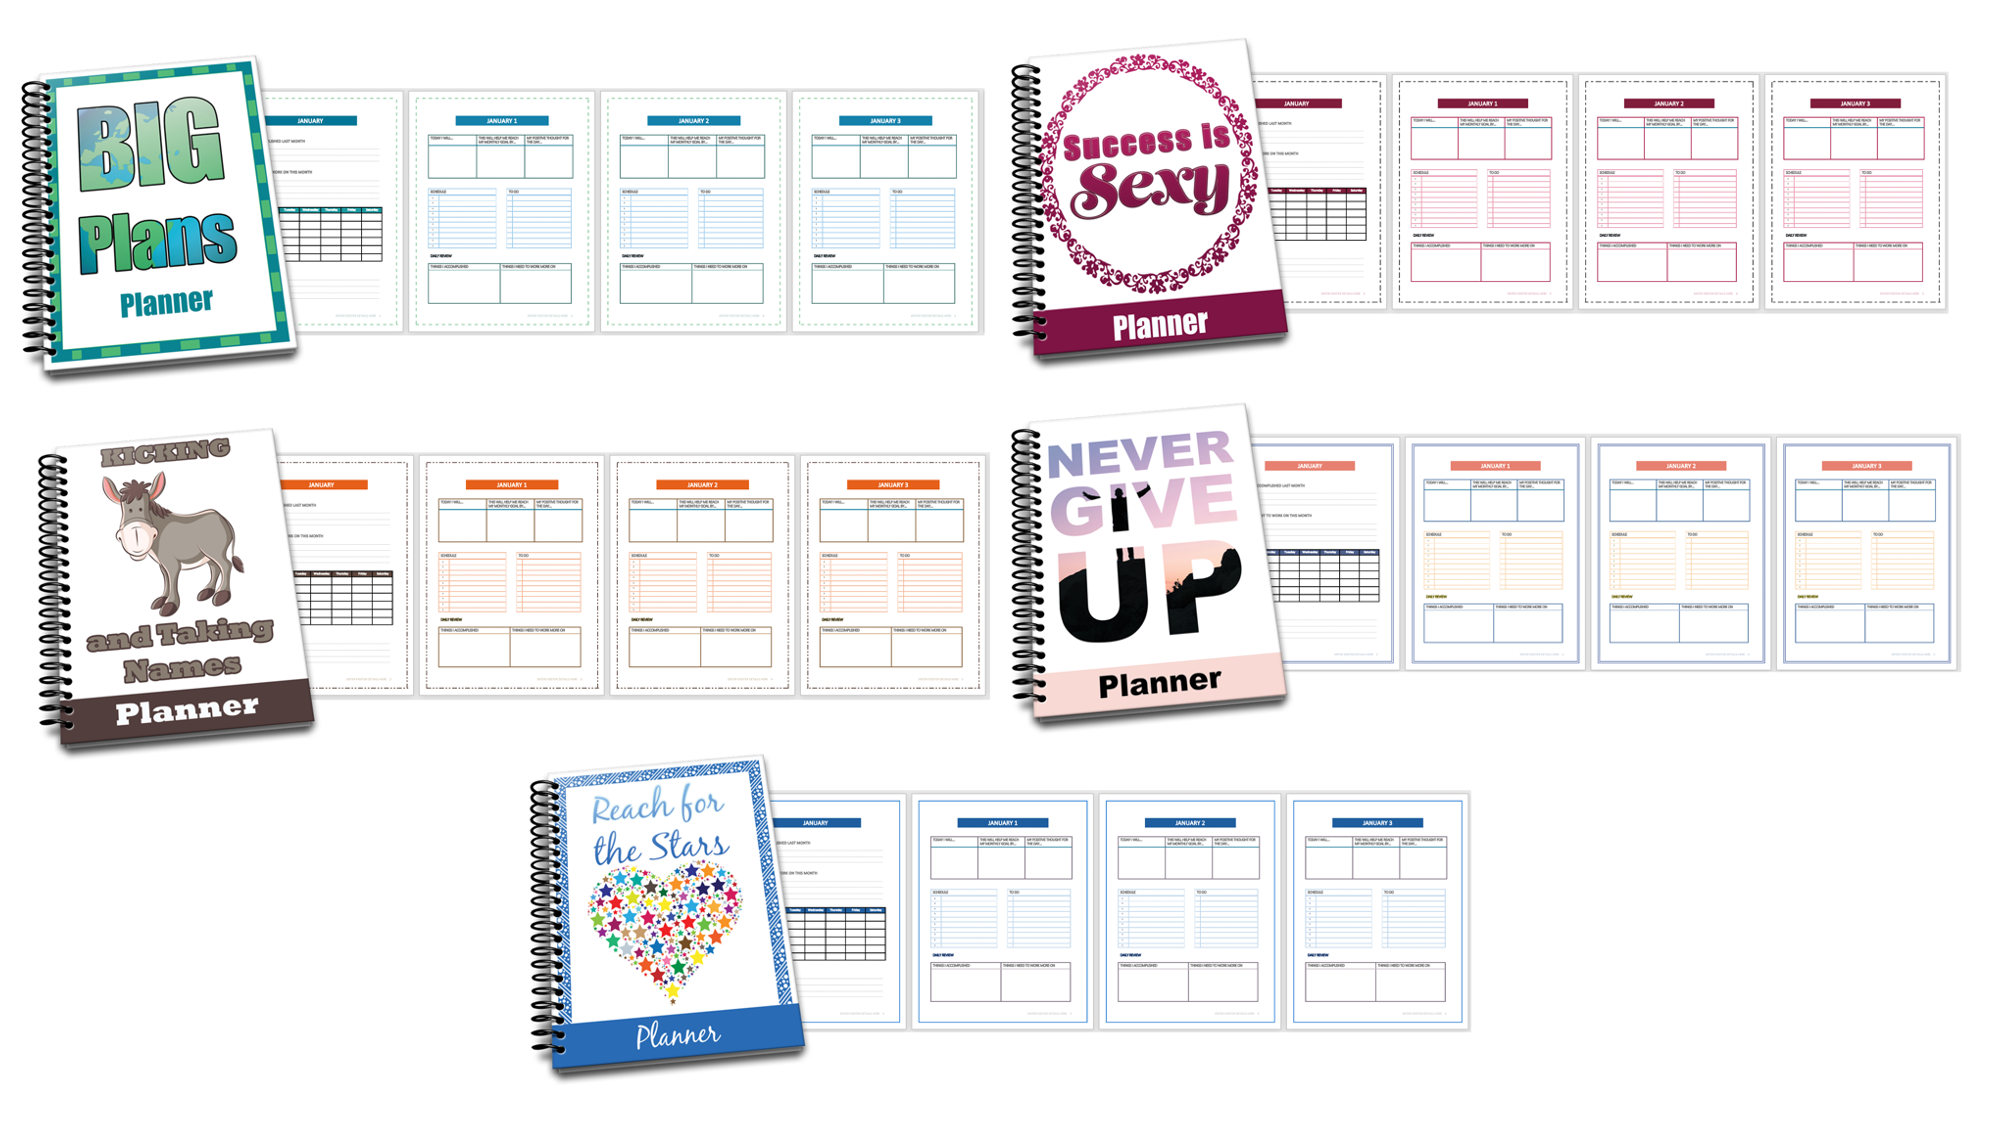 Goal Setting Planners with PLR Rights